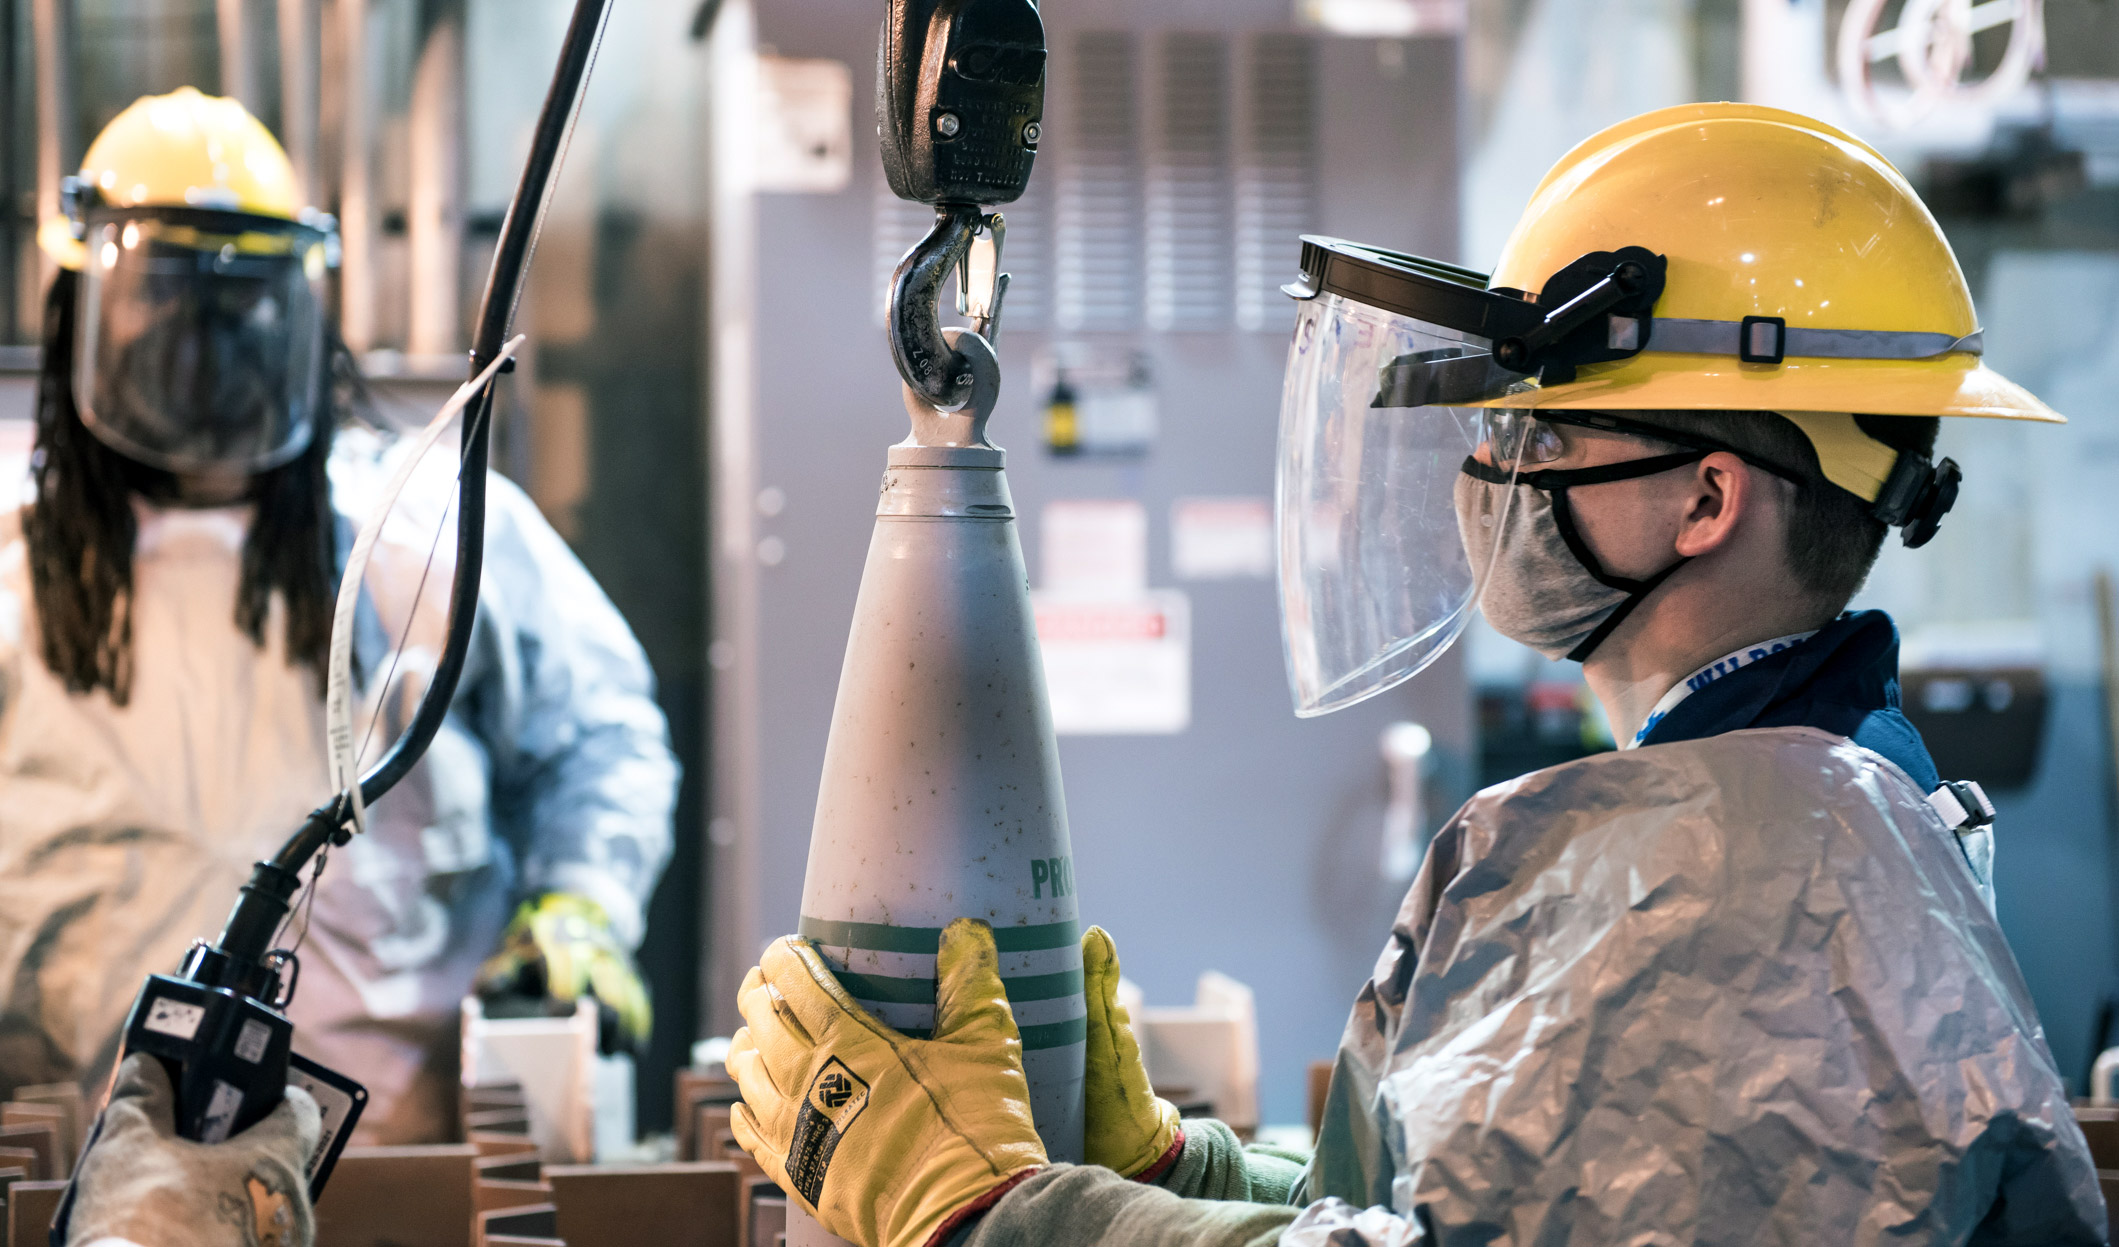 An operator uses a lift assist to safely place a 155mm projectile containing VX nerve agent in a tray to begin the destruction process at the Blue Grass Chemical Agent-Destruction Pilot Plant.